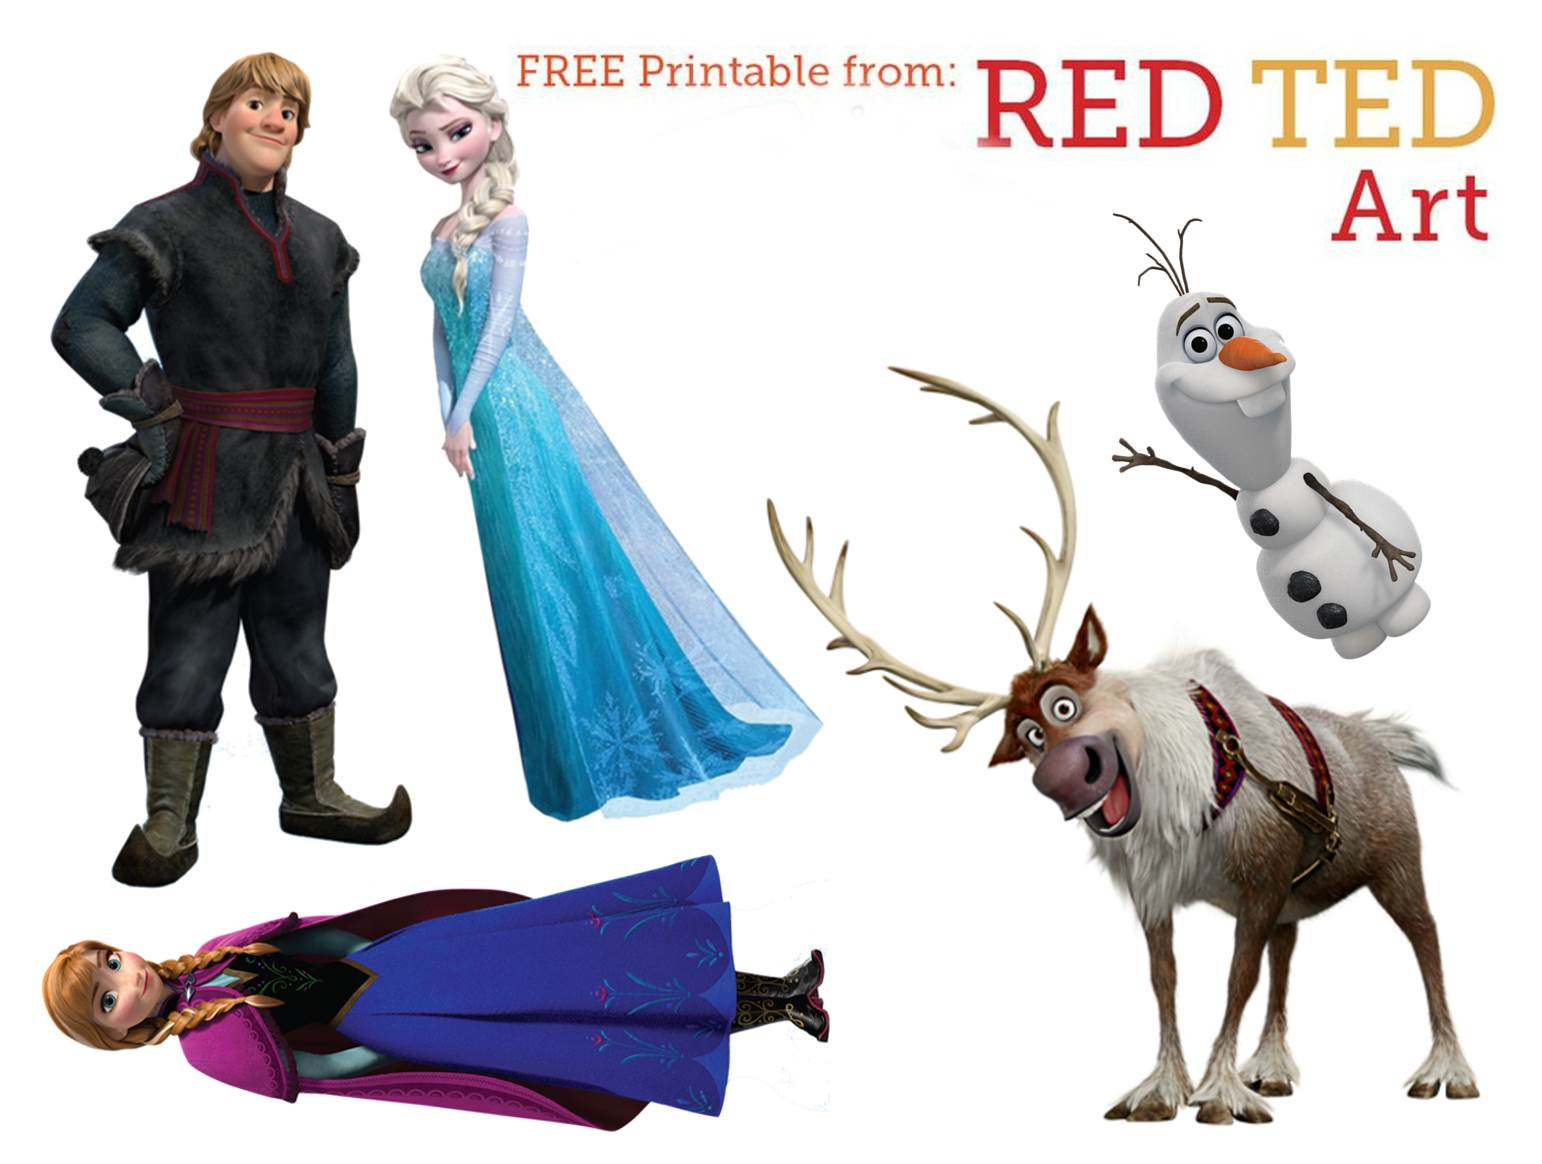 photo relating to Frozen Free Printable identify Disneys Frozen Craft - Puppets - Purple Ted Artwork